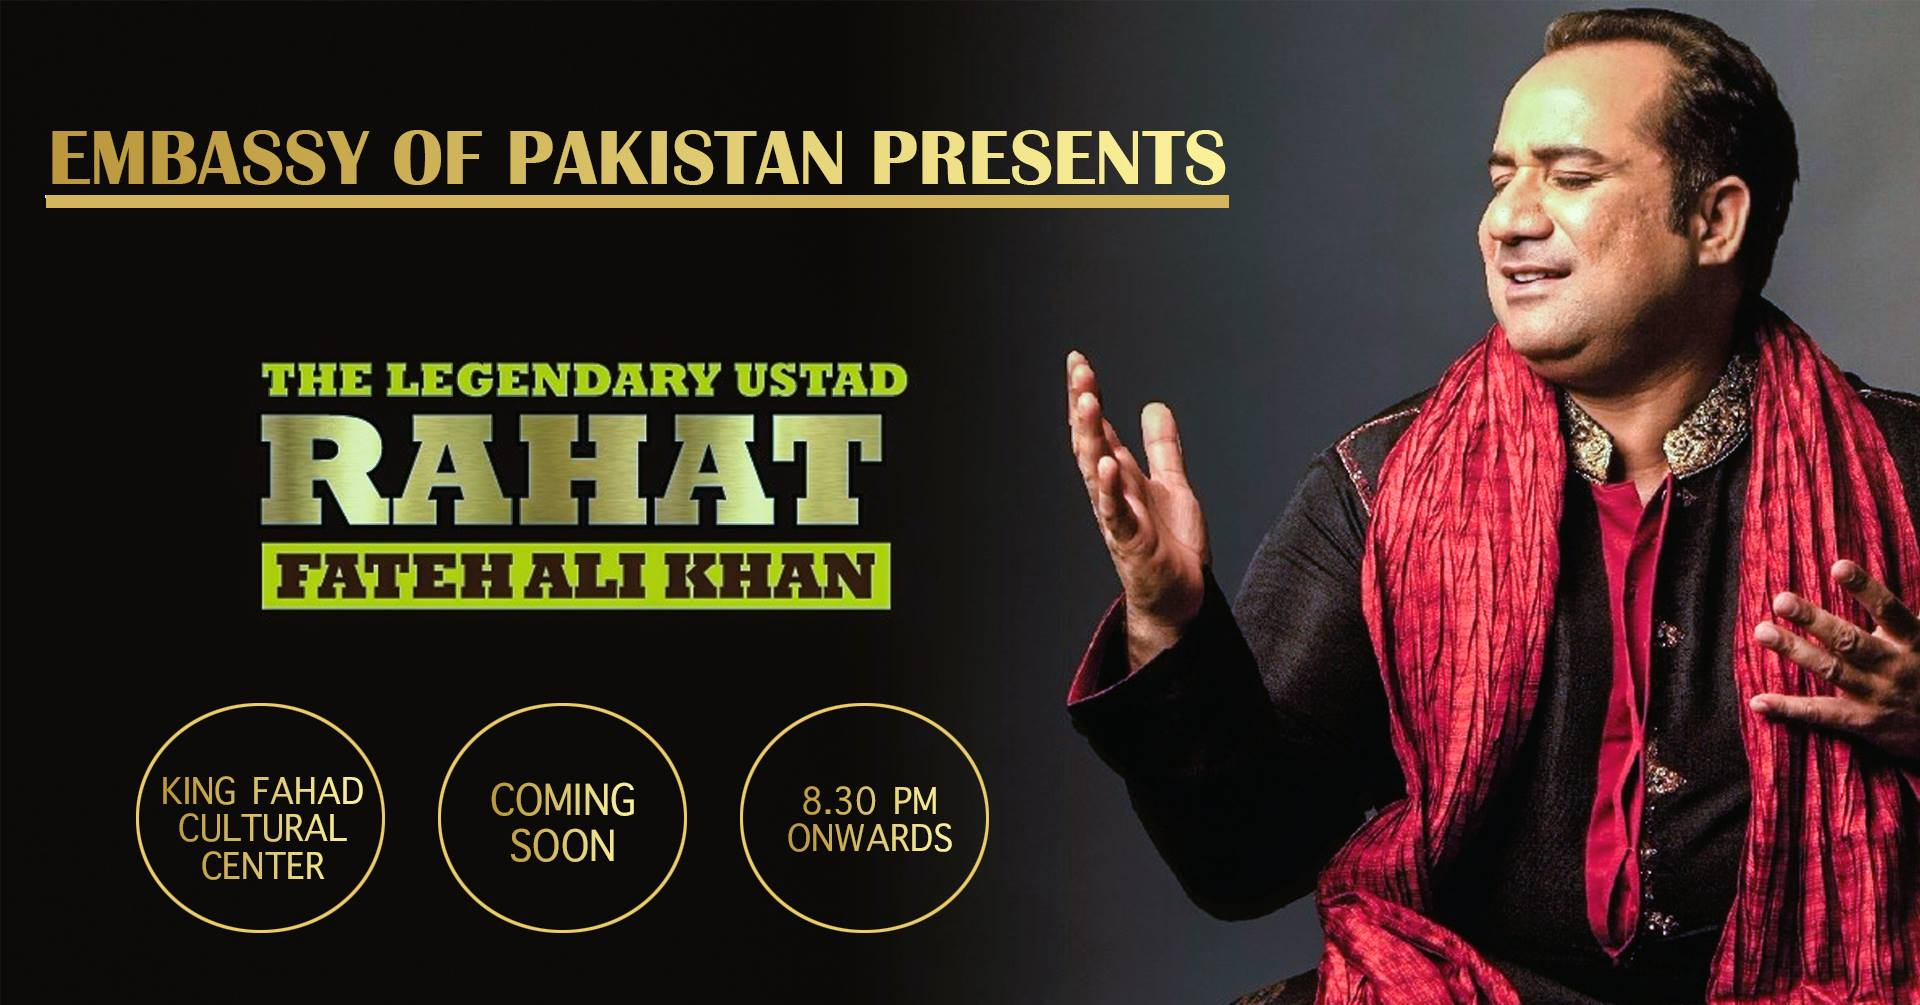 New Date Announced for Concert of Rahat Fateh Ali Khan